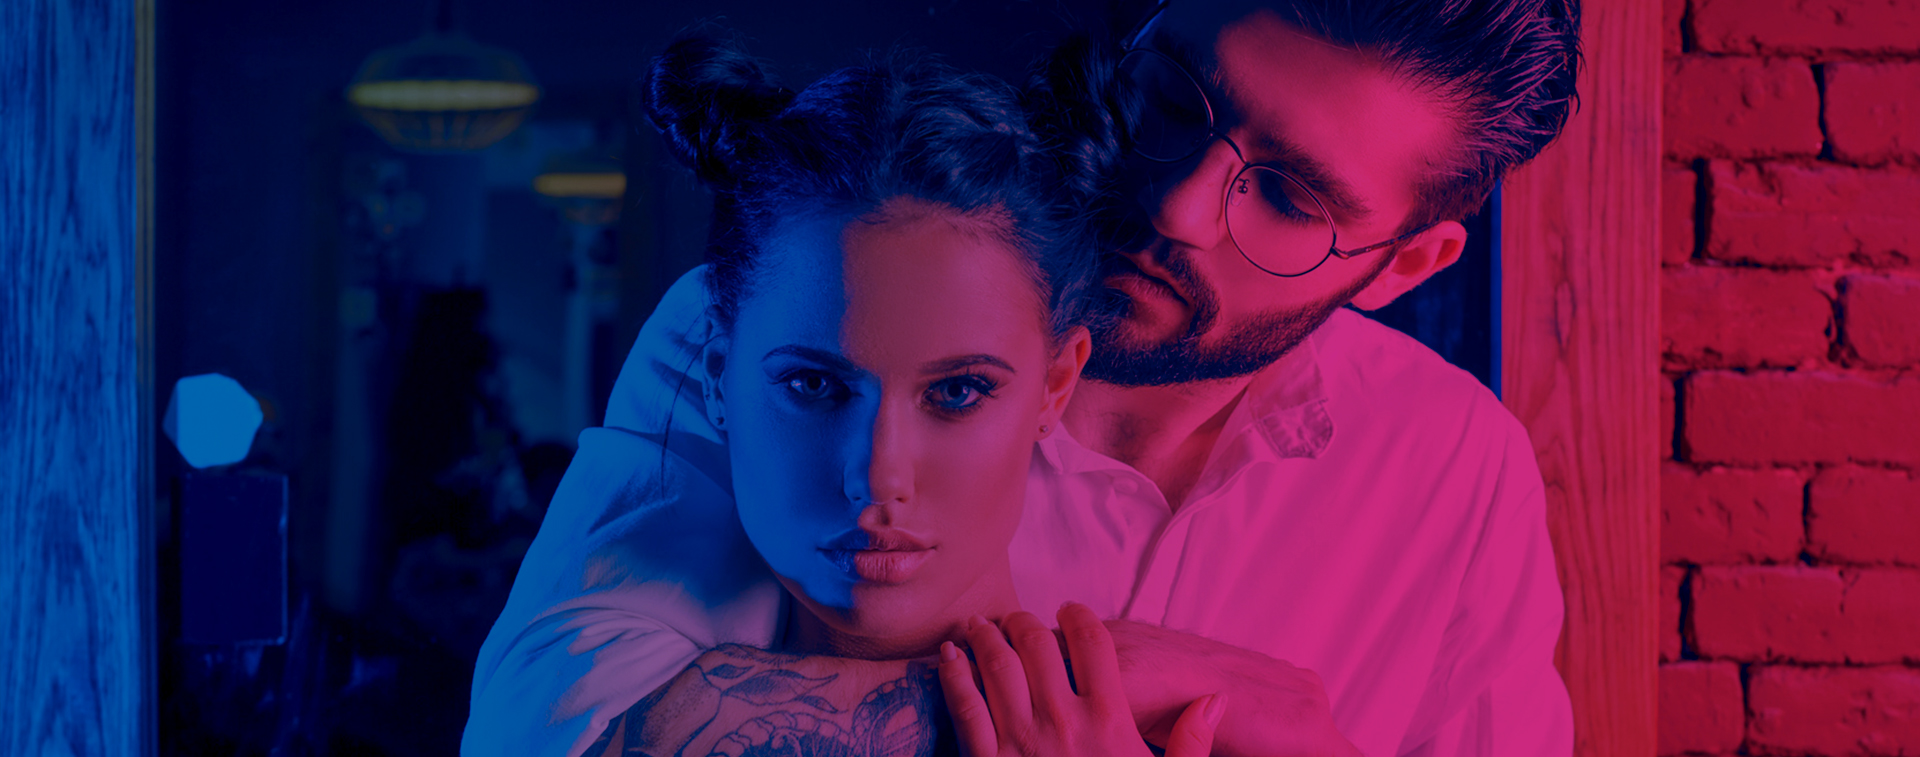 PINK & BLUE - 100% energy for her and for him